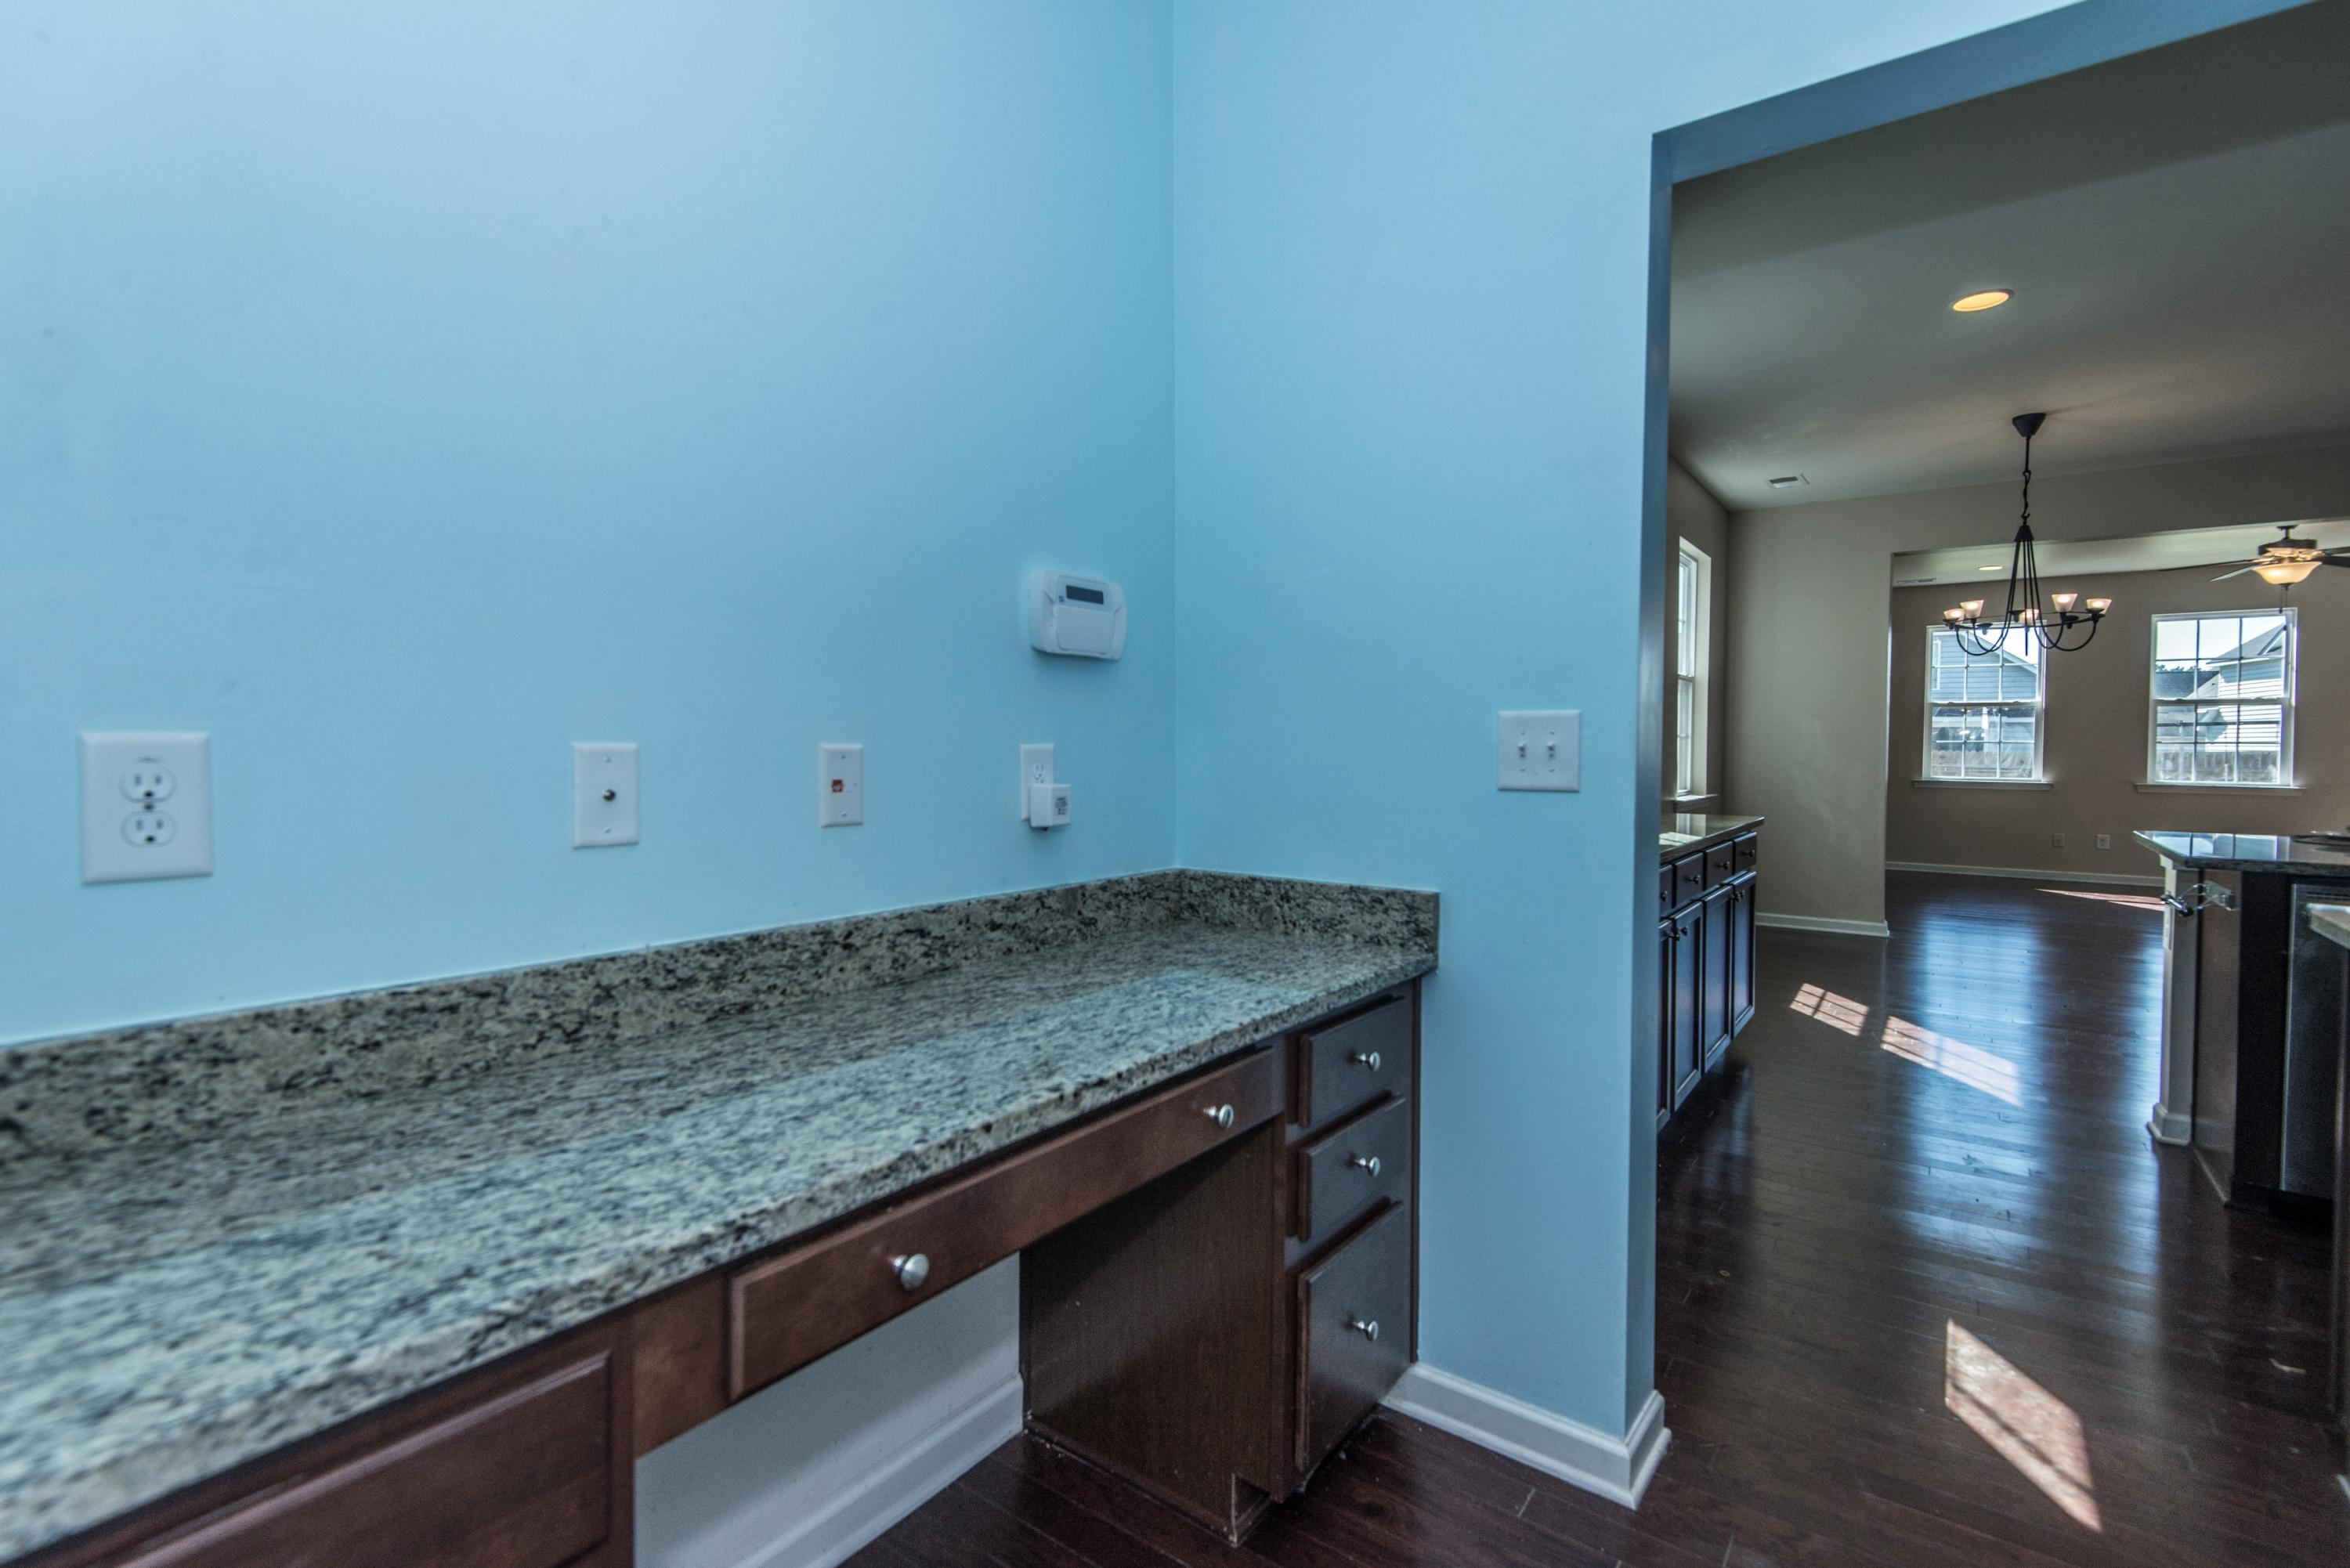 Wentworth Hall Homes For Sale - 216 Wexford, Summerville, SC - 40